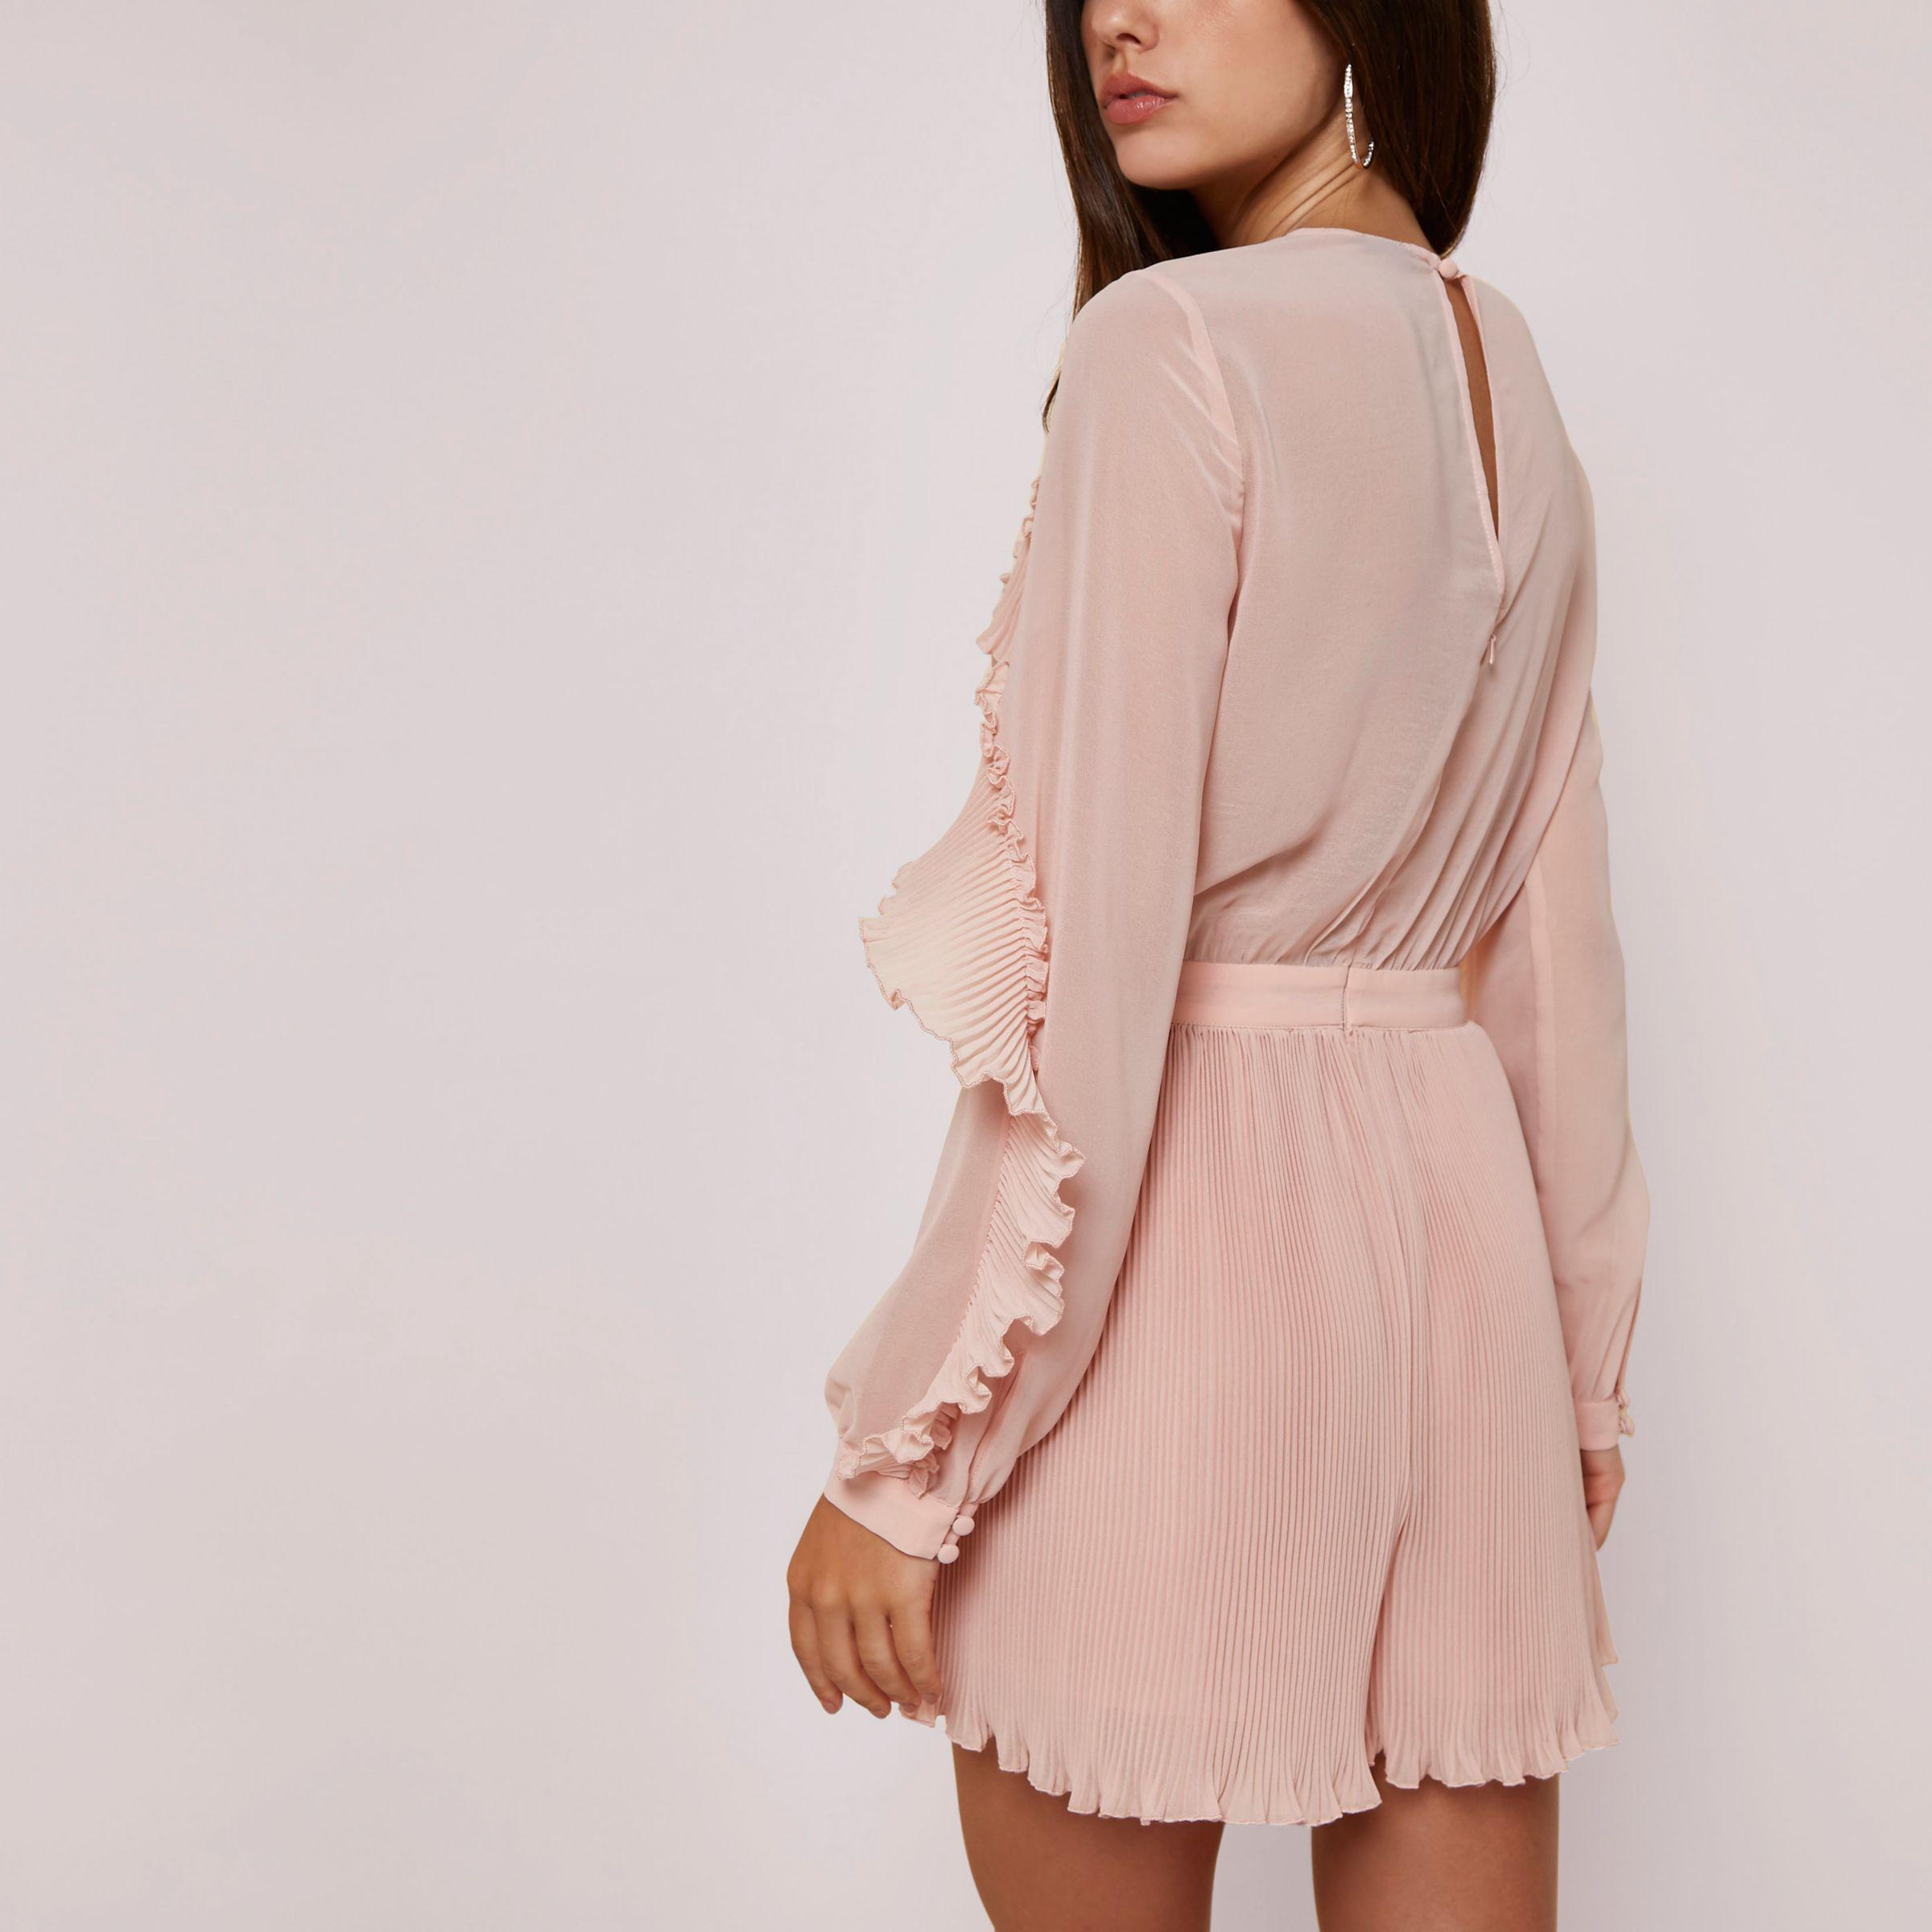 3b2c549445 River Island Light Pink Long Sleeve Pleated Frill Playsuit in Pink ...